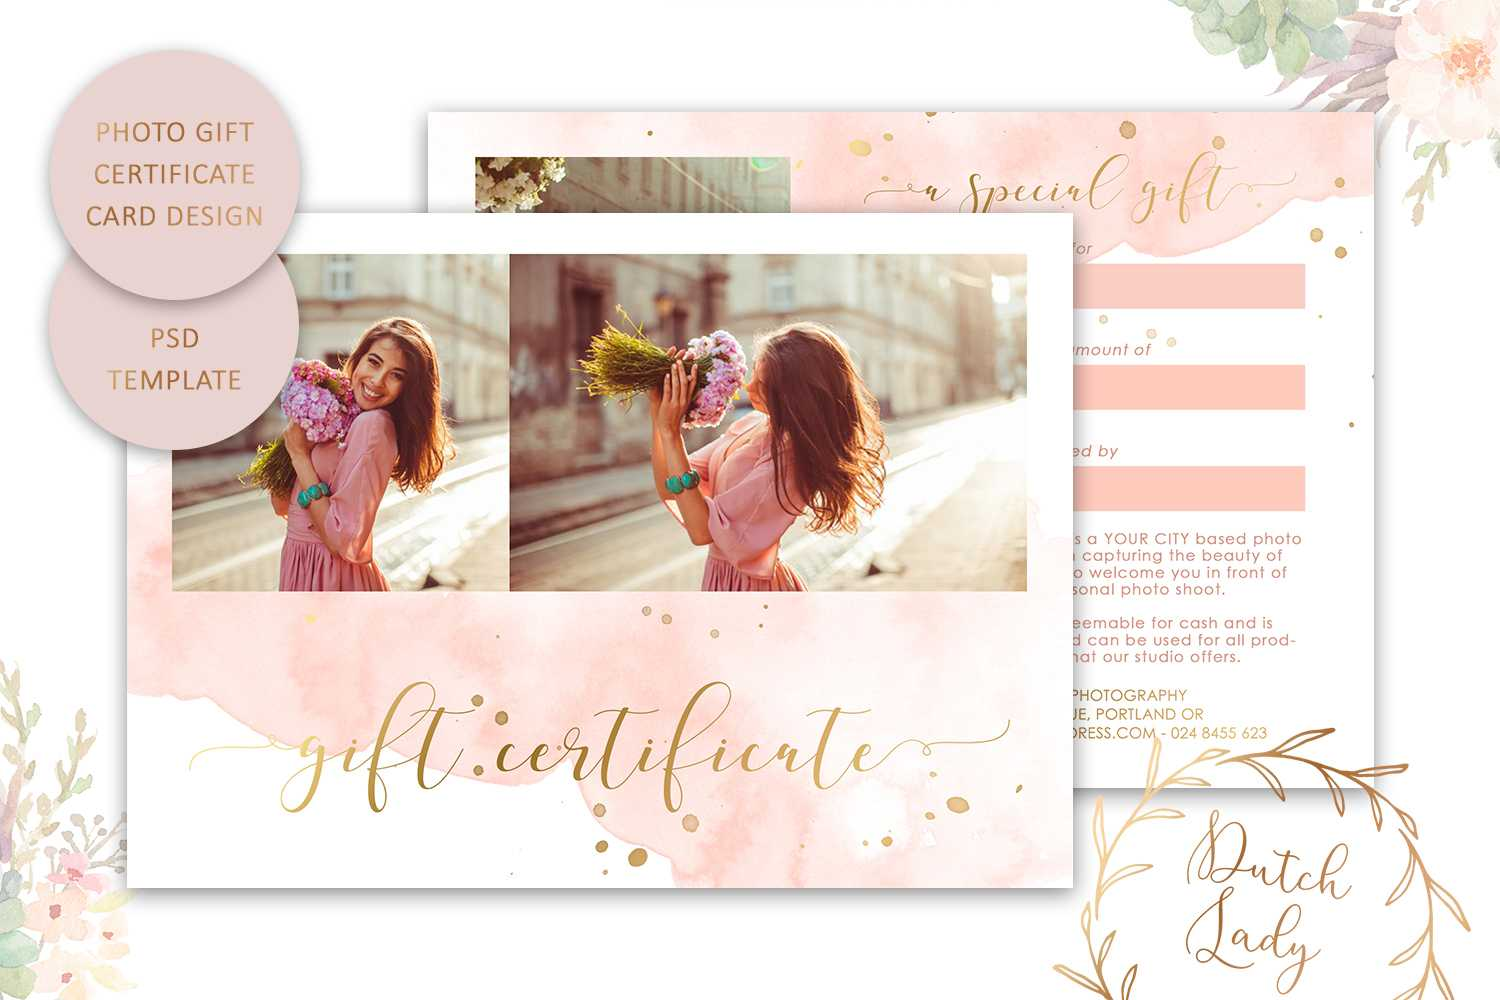 008 Template Ideas Photo Gift Card Photography Stirring With Regard To Free Photography Gift Certificate Template